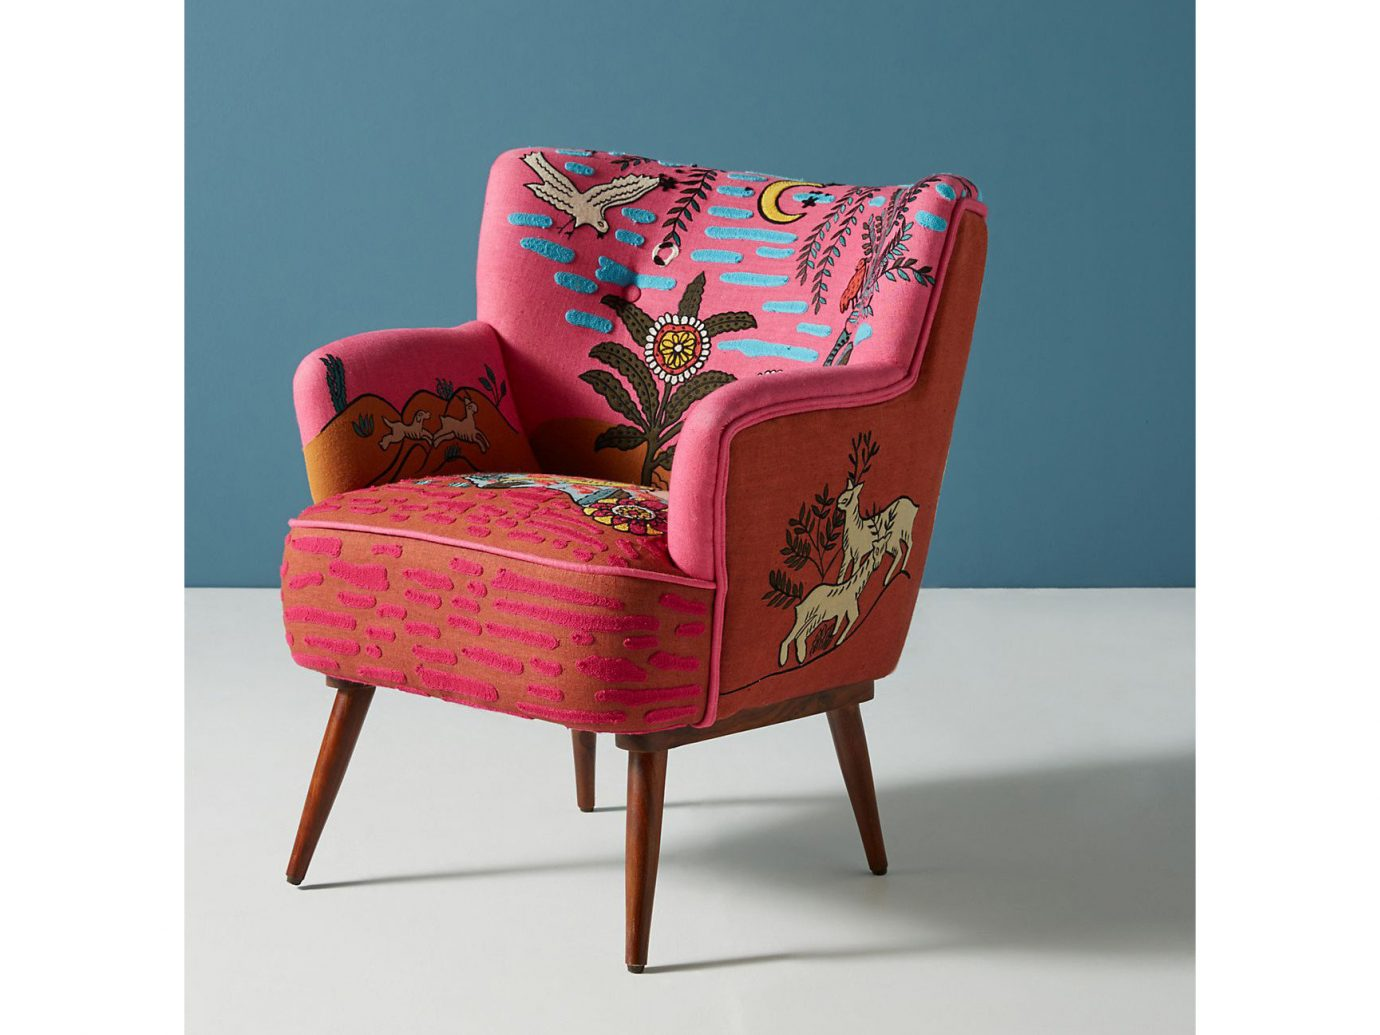 Style + Design Travel Shop furniture chair product design product magenta